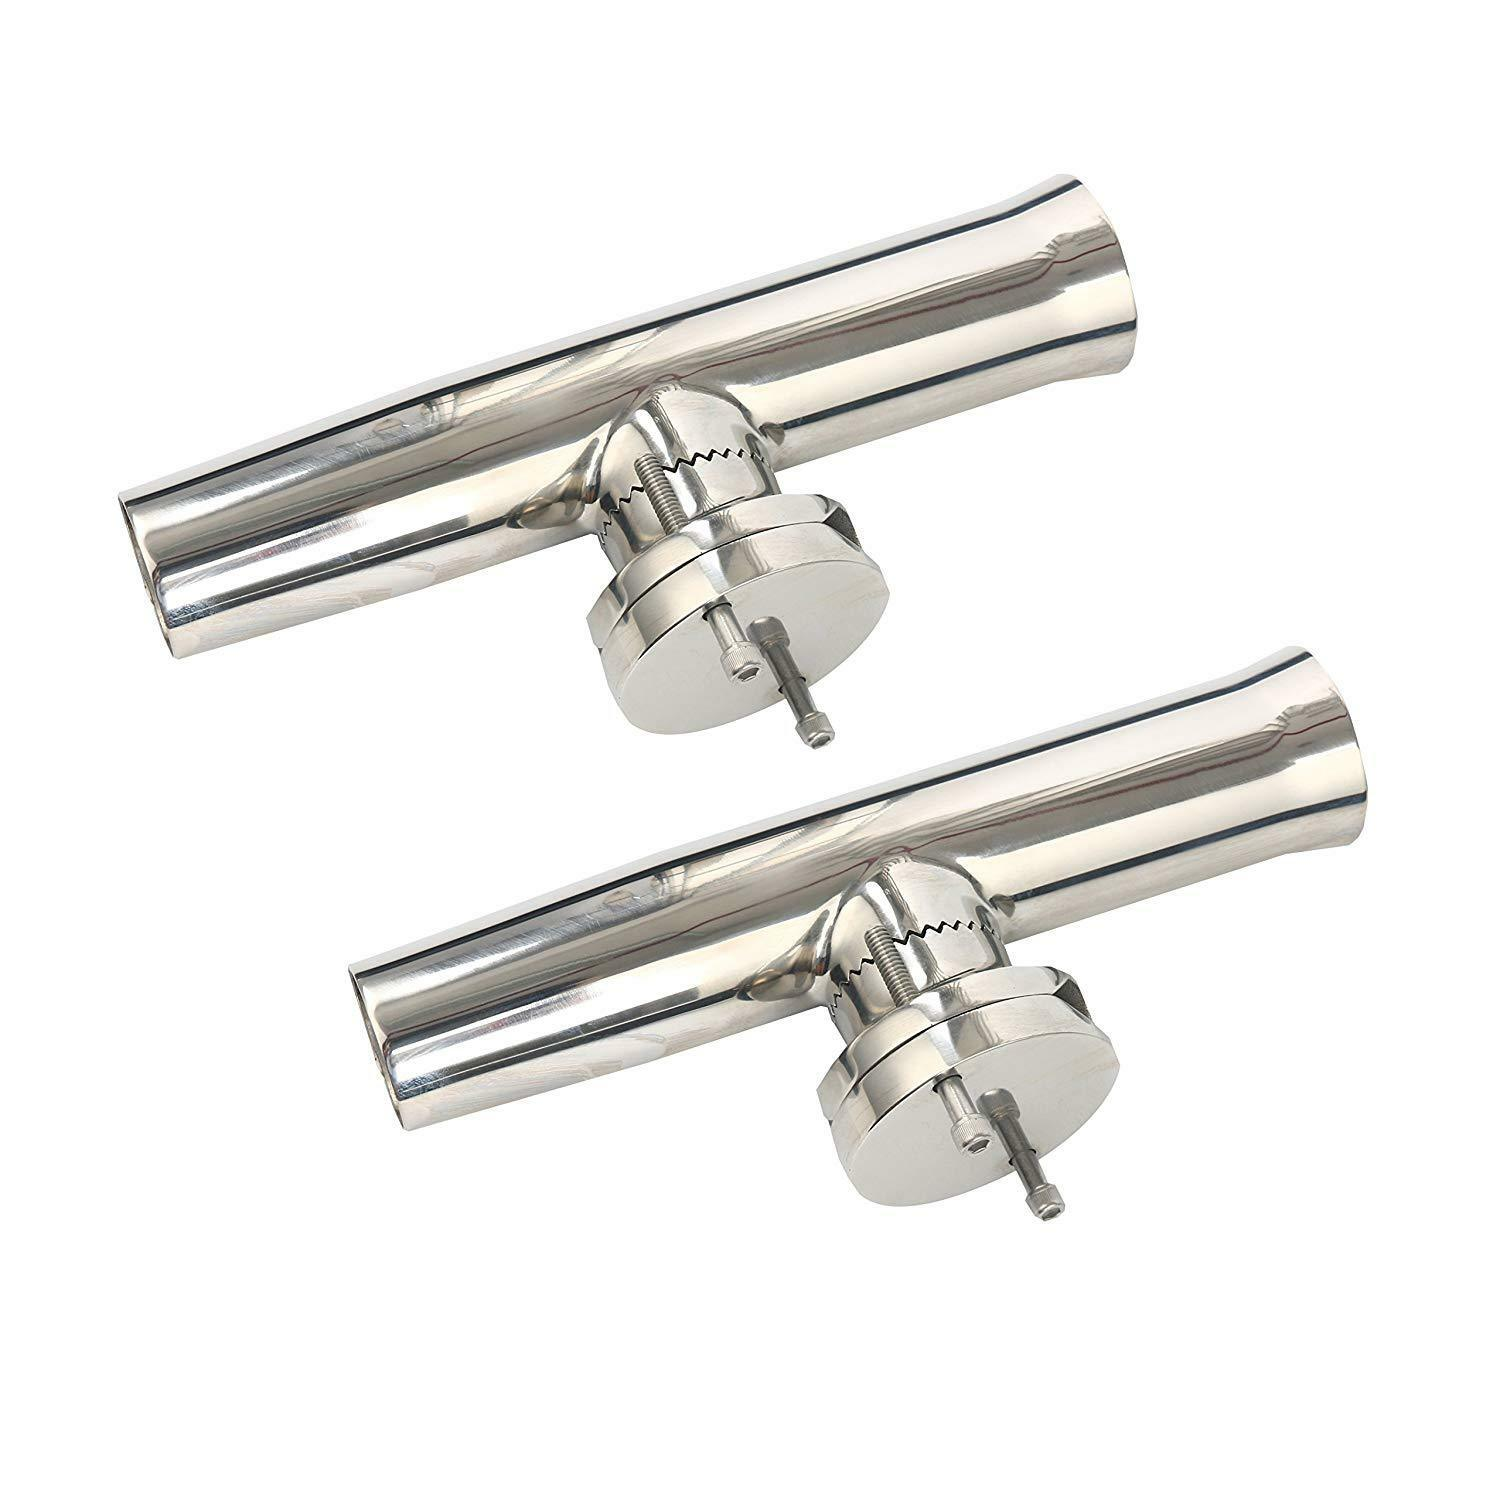 2pcs Tournament Style Clamp on Fishing Rod Holder Stainless for Rail 1-1 4 to 2